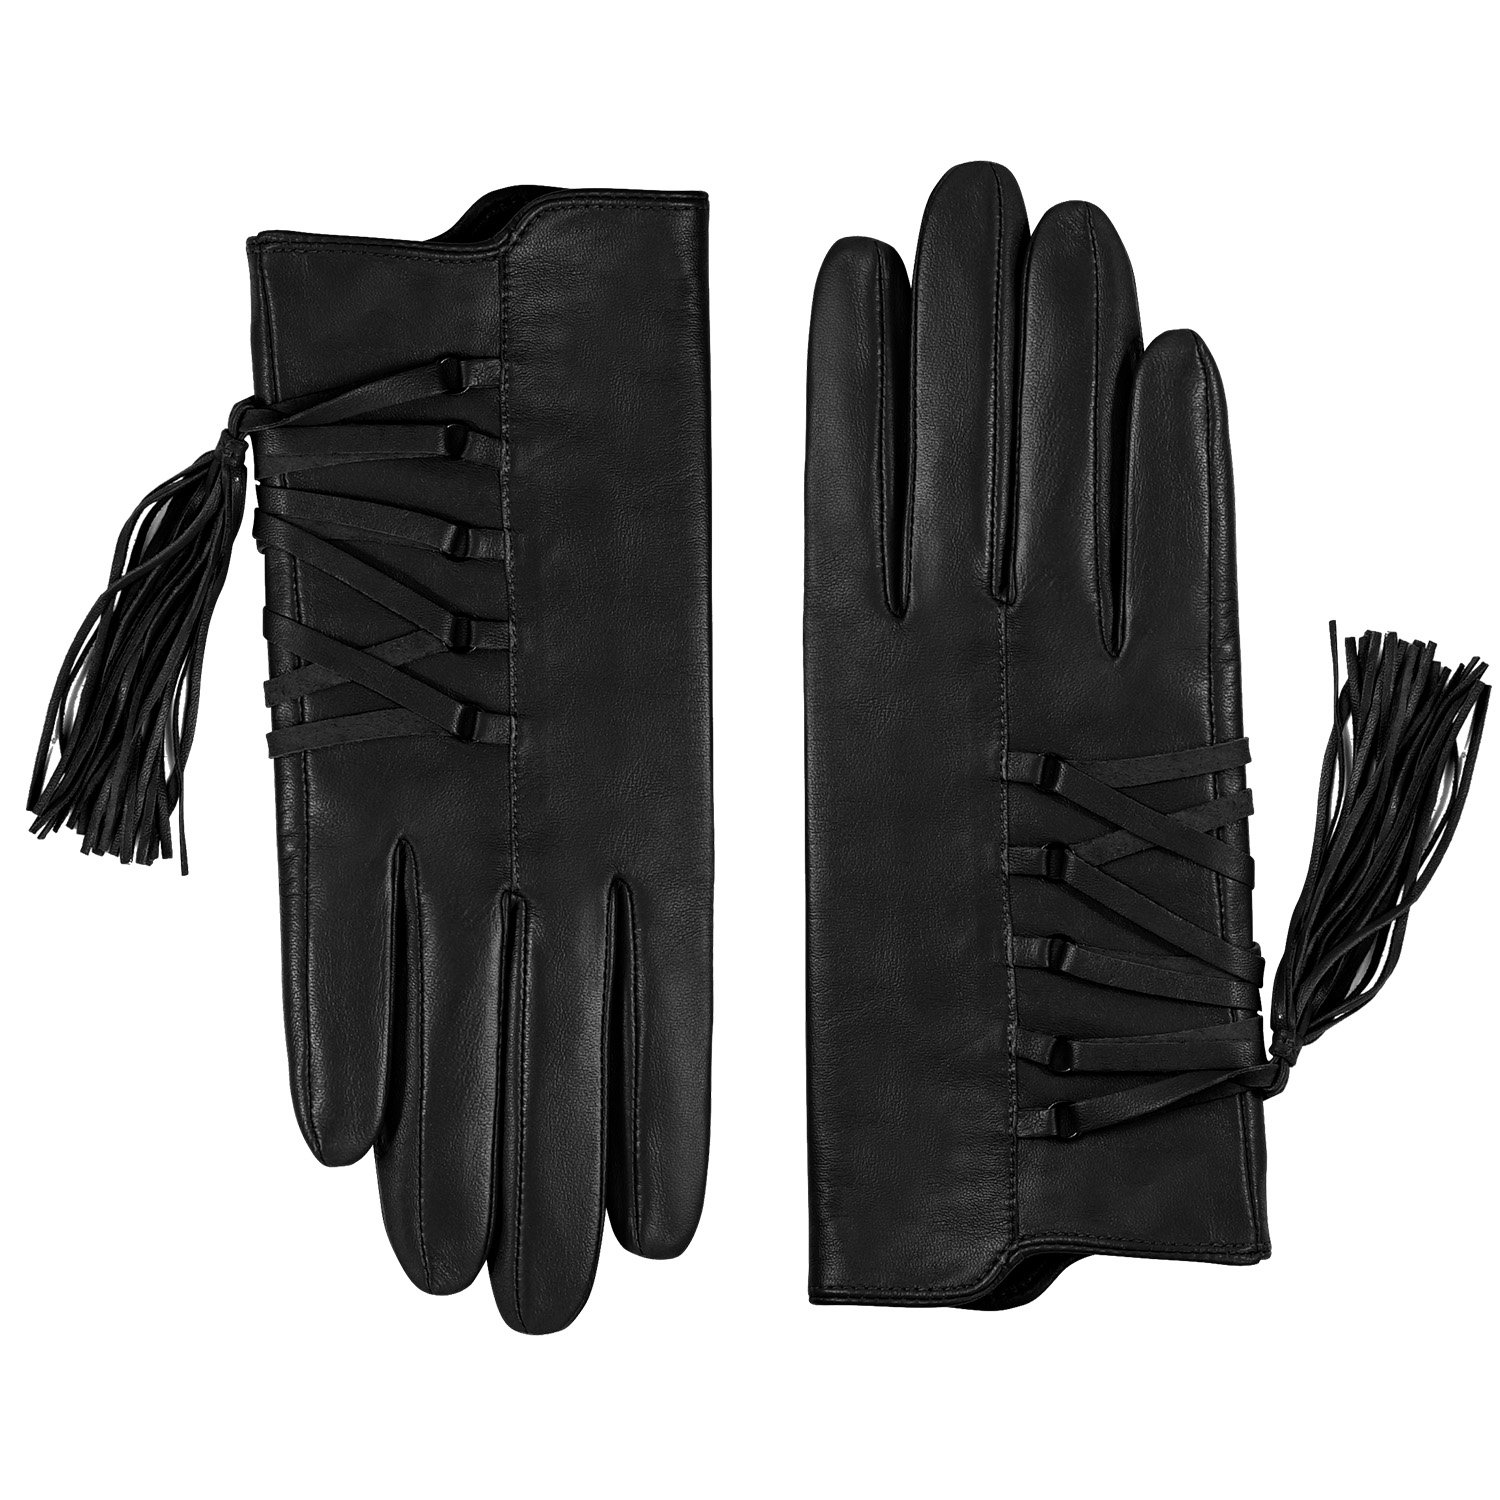 Fioretto 10% OFF Women's Day Gifts Winter Womens Genuine Leather Gloves Touchscreen Cashmere Lined Italian Goatskin Leather Smart Gloves for Phone Touch Screen Black Cashmere 7.5